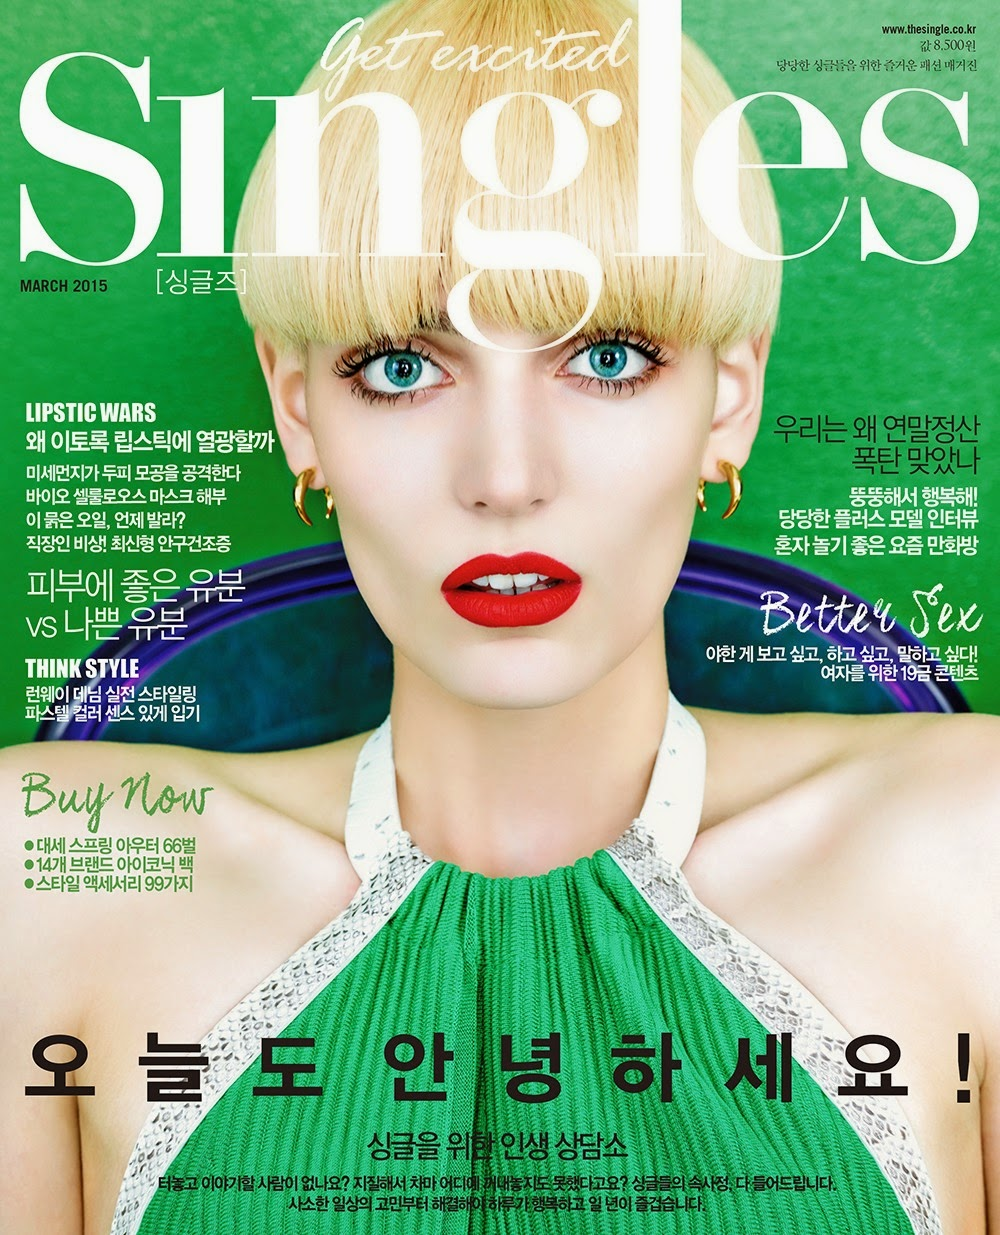 Fashion Model @ Zuzanna Bijoch - Singles Korea March 2015